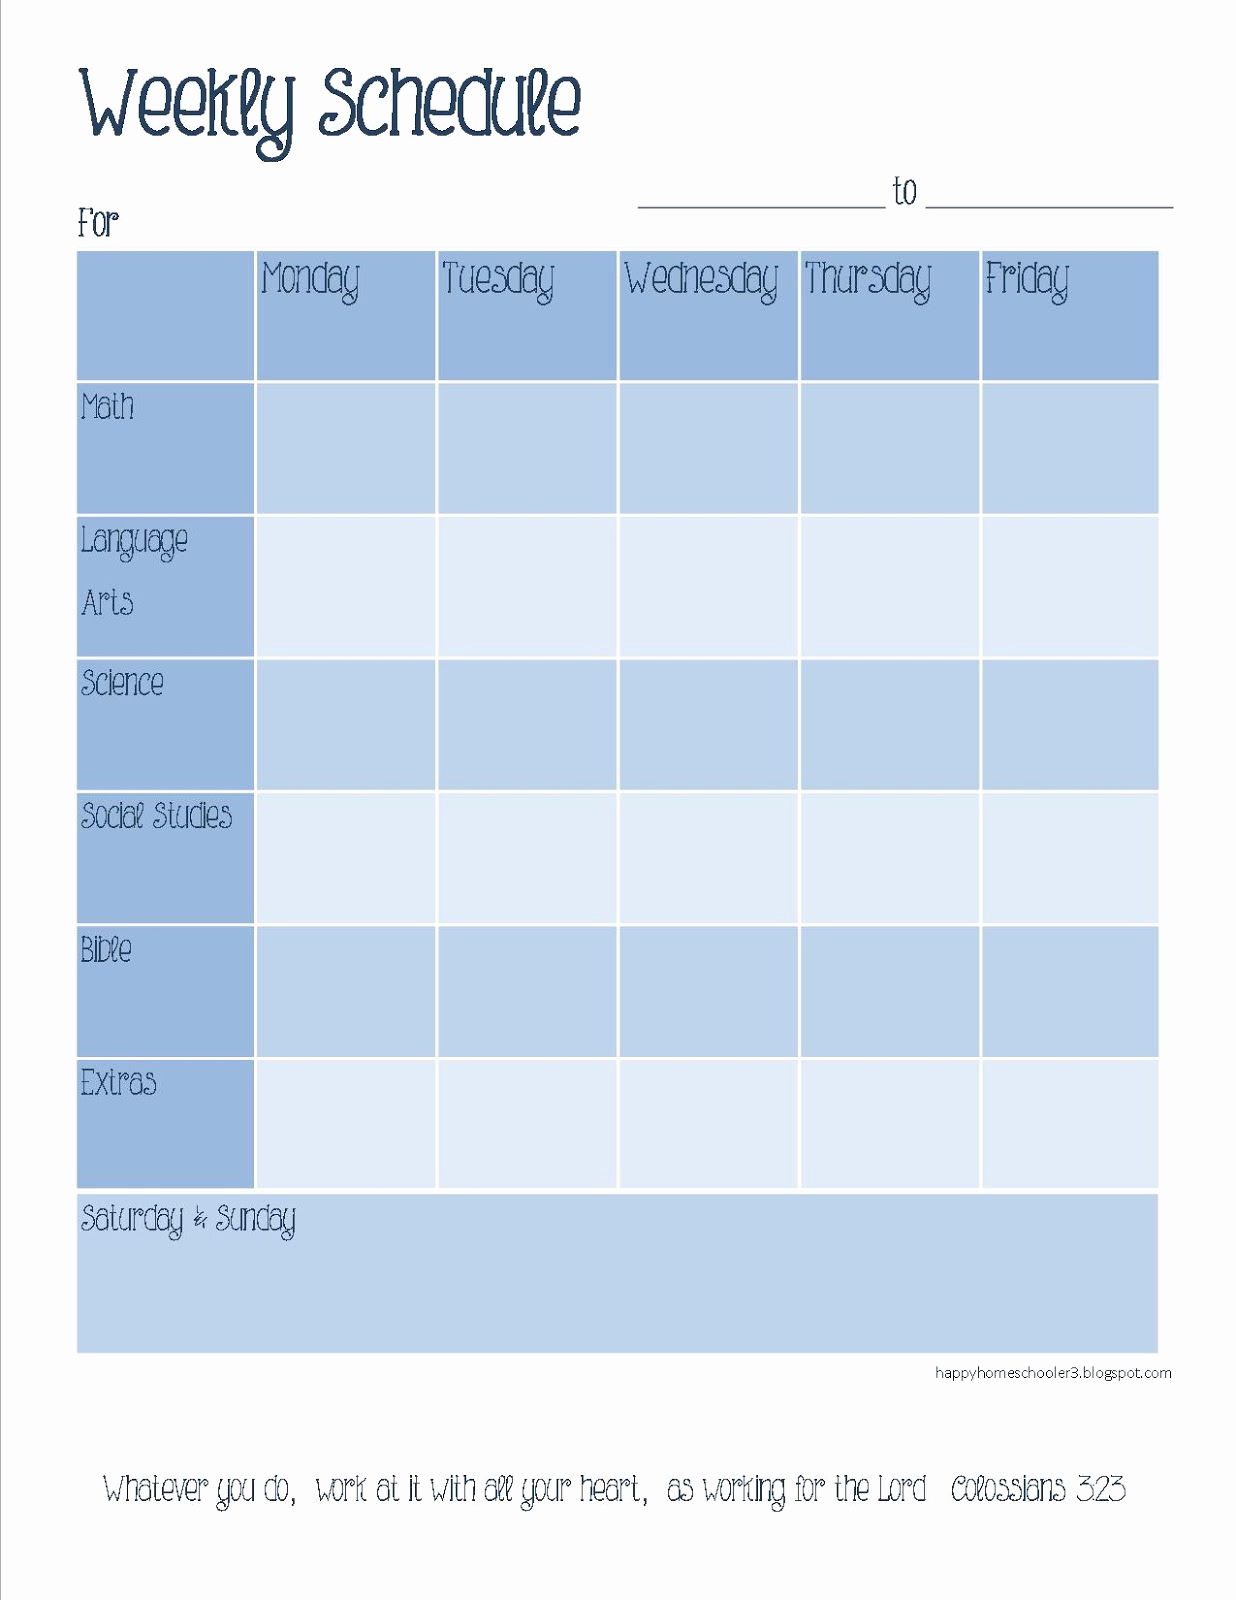 Weekly Schedule Template Printable Best Of the Happy Homeschooler Our Homeschool Planner A Free